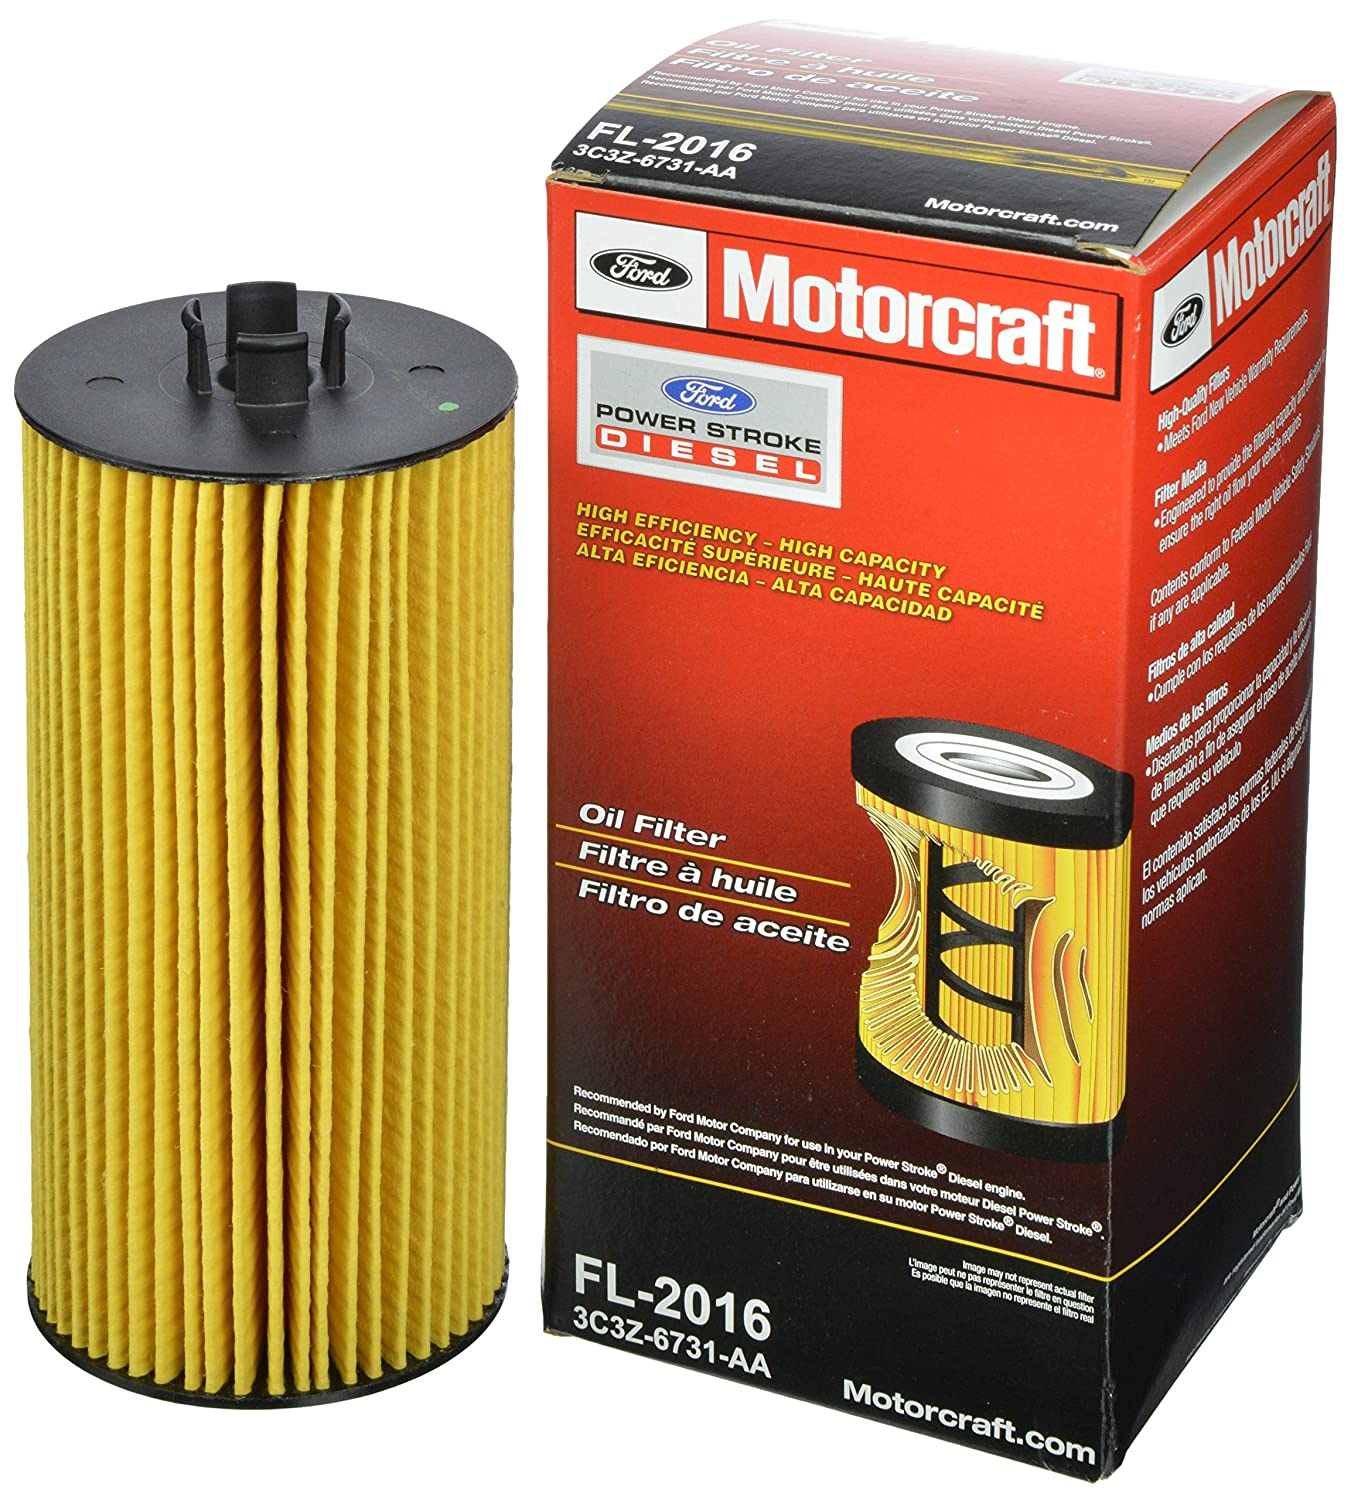 Motorcraft Fl 2016 Oil Filter Automotive 7 3 Fuel Housing Removal